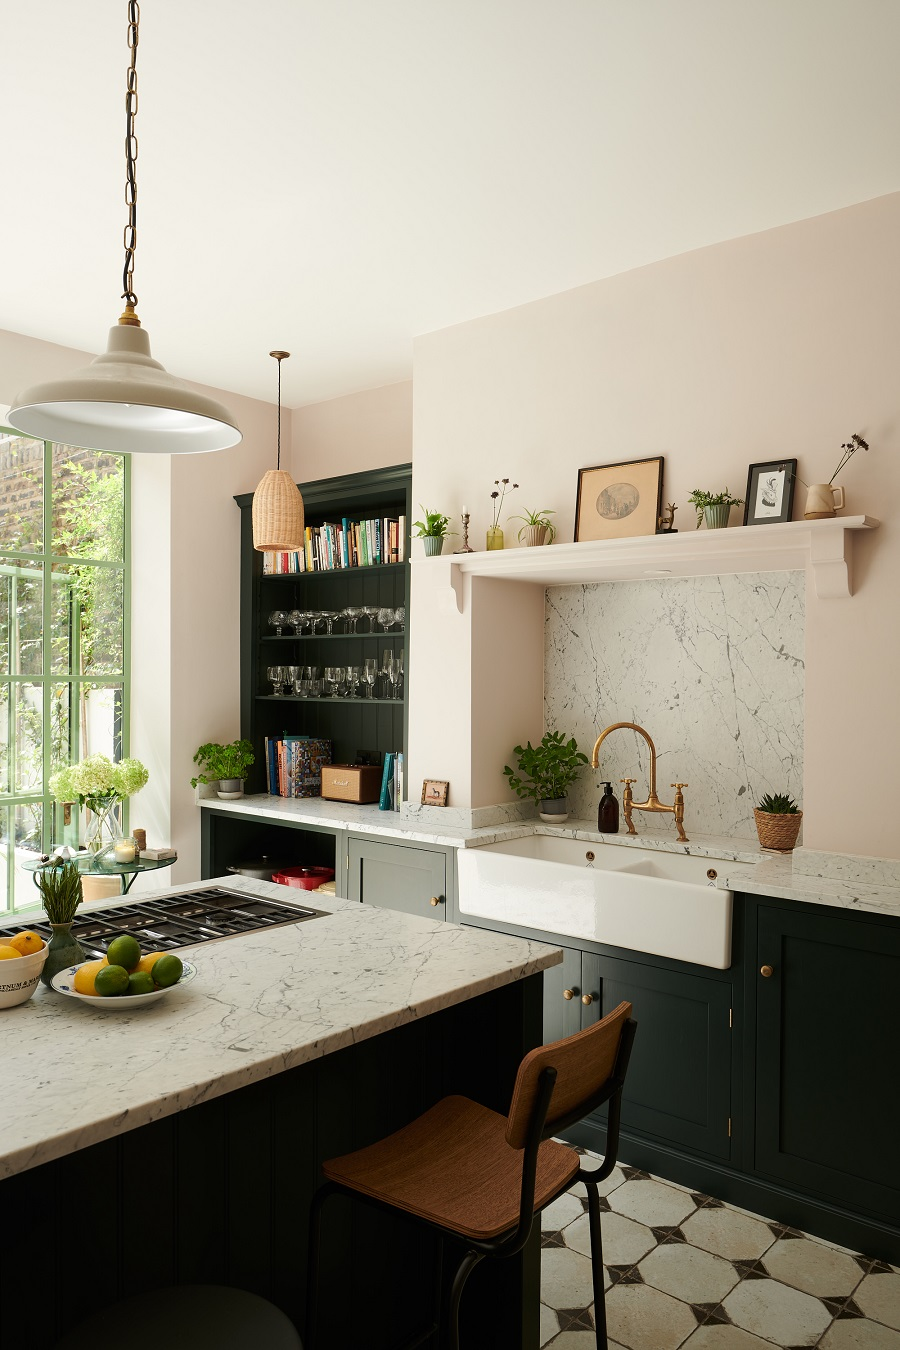 A Beautiful Basement Kitchen Full of Light and Character